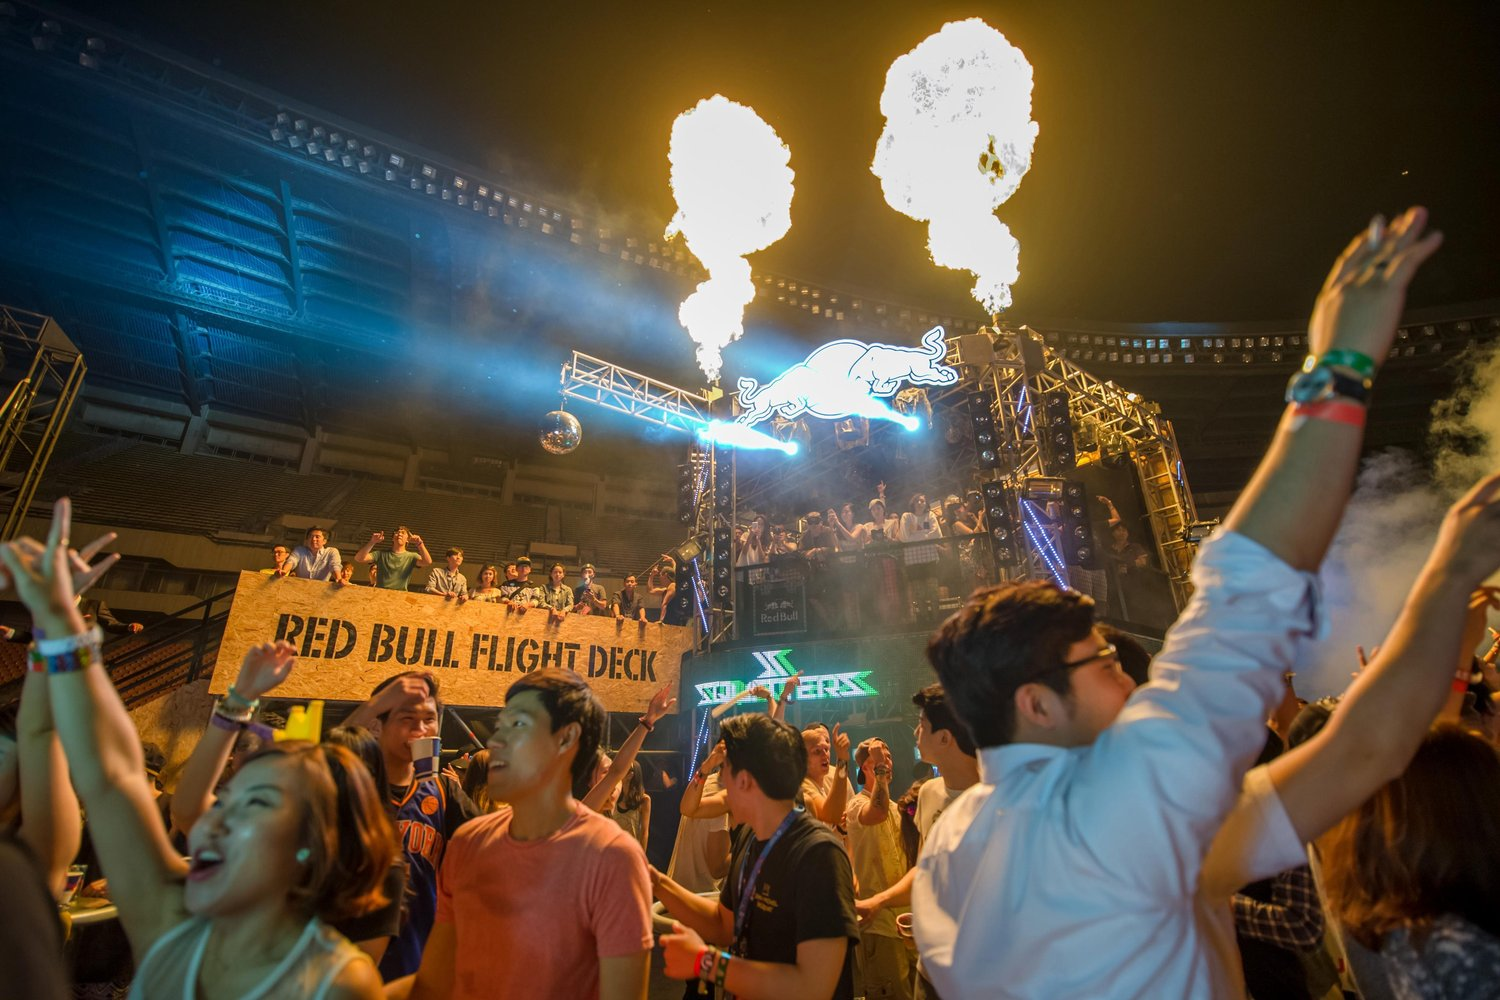 Red bull flight deck ultra 2014